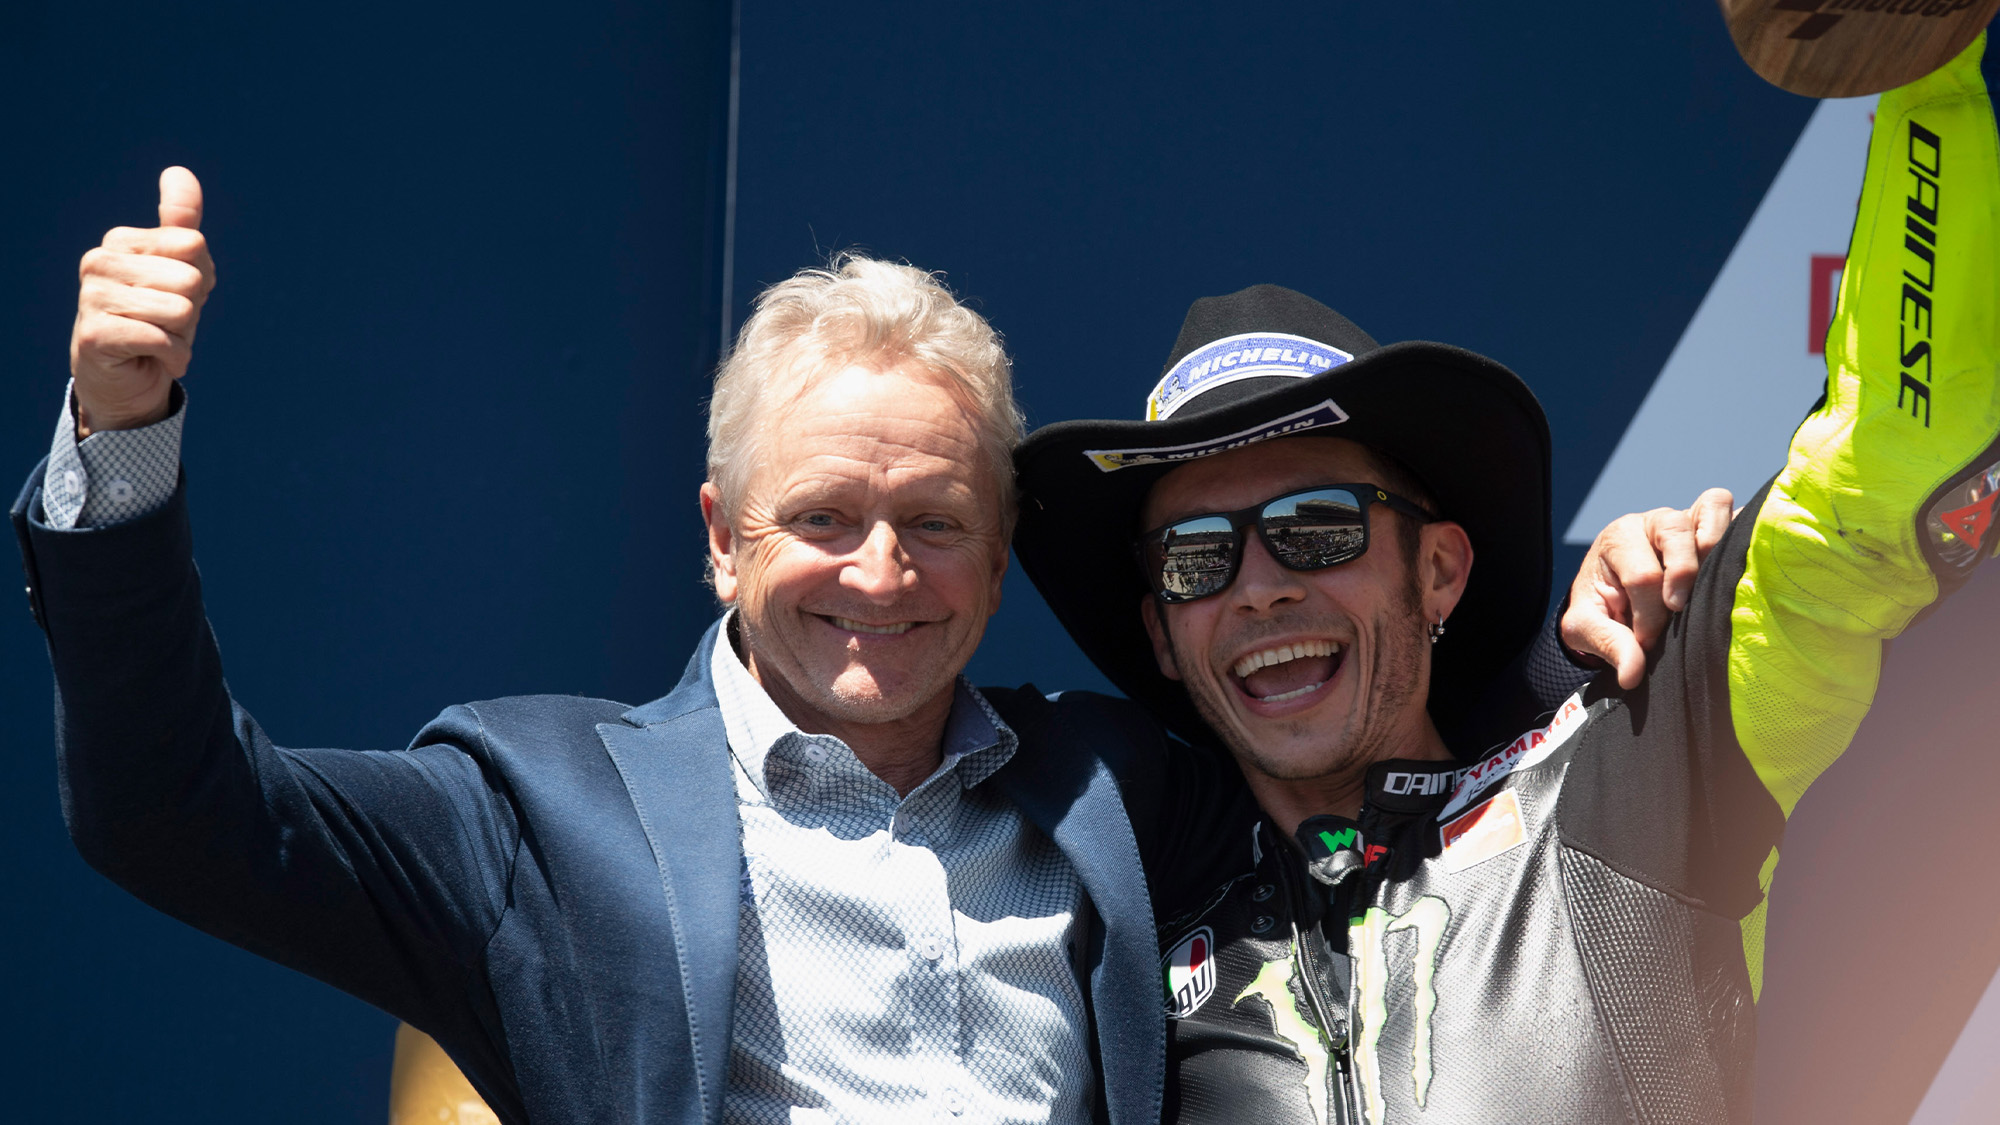 Kevin Schwantz and Valentino Rossi on the podium at COTA 2019